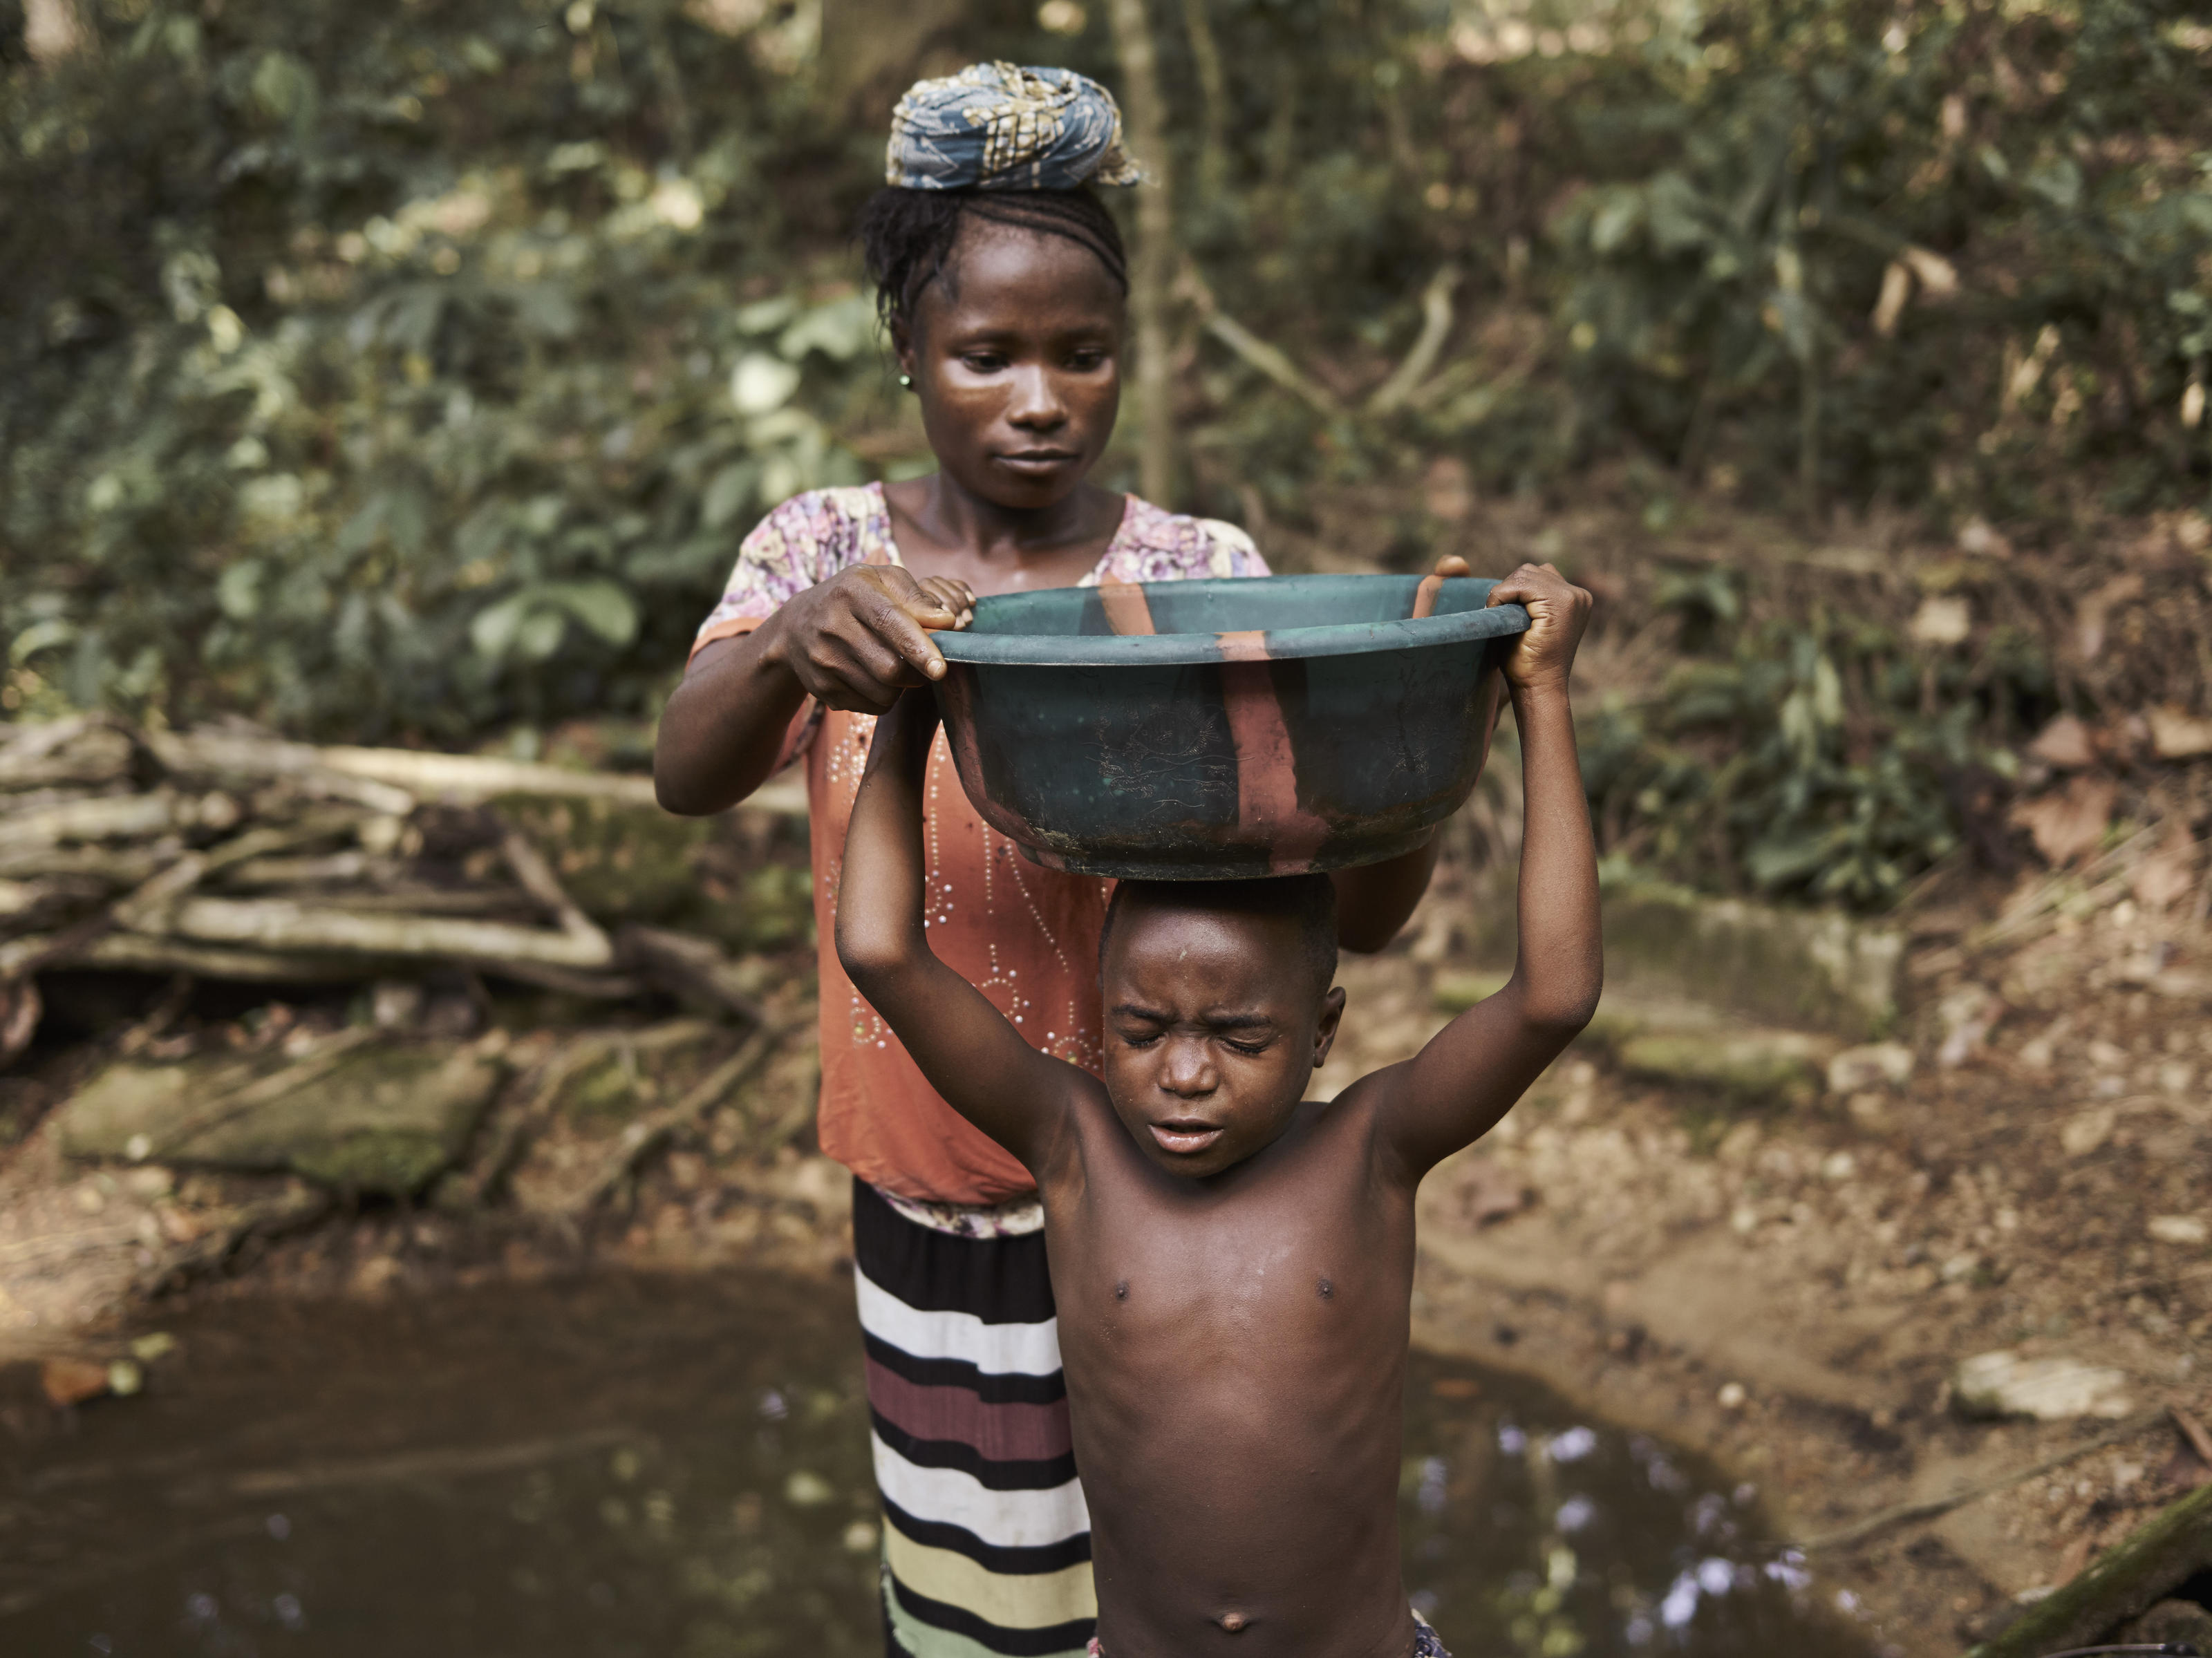 Matta Saffah, 27, puts a basin of dirty water on the head of her son Lahai, 7, after collecting it from a natural spring, the previous water source, in the village of Tombohuaun. Everyone in the village has experienced persistent problems with worms,  ...